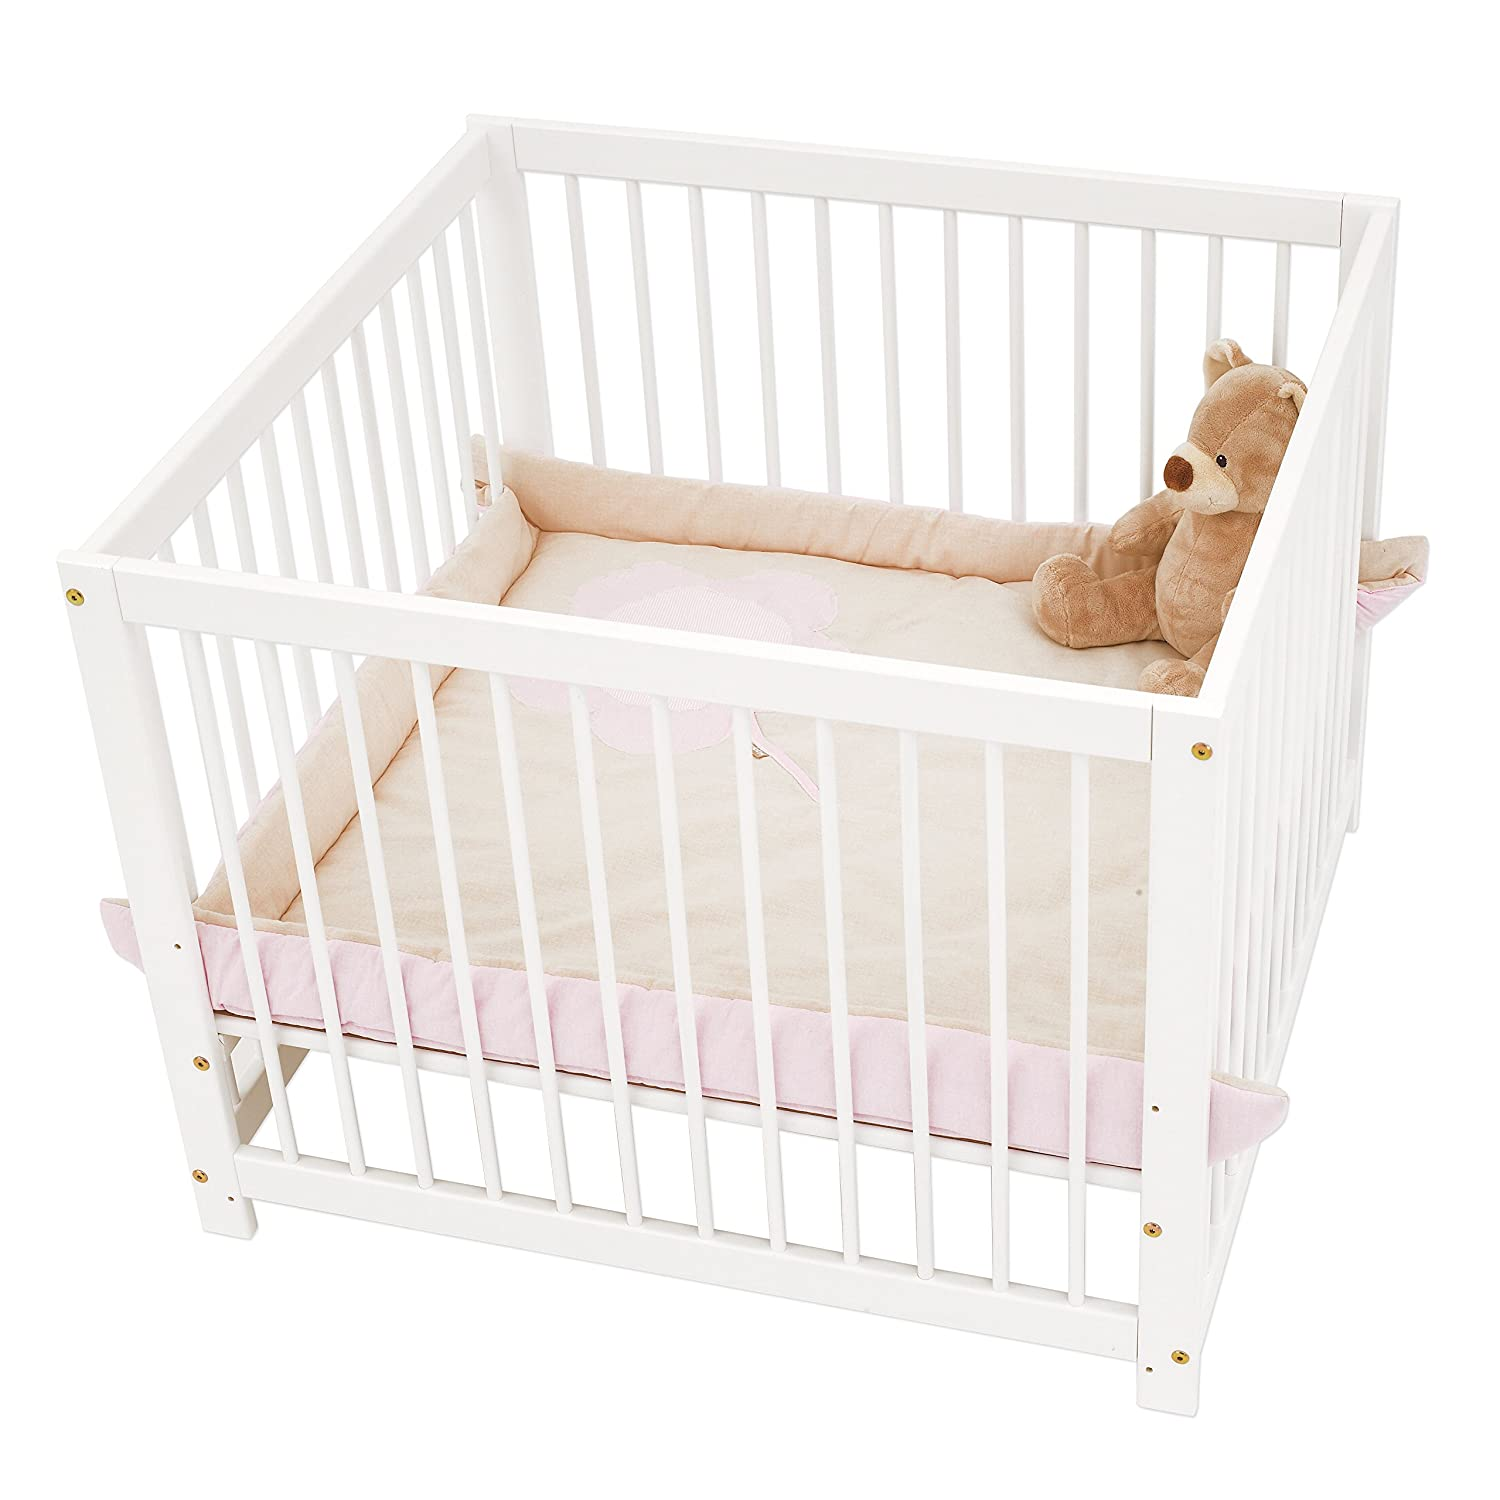 Hoppekids Solid Pinewood IDA Playpen with Bars Adjustable In 3 Different Heights, Wood, White MARIE Playpen